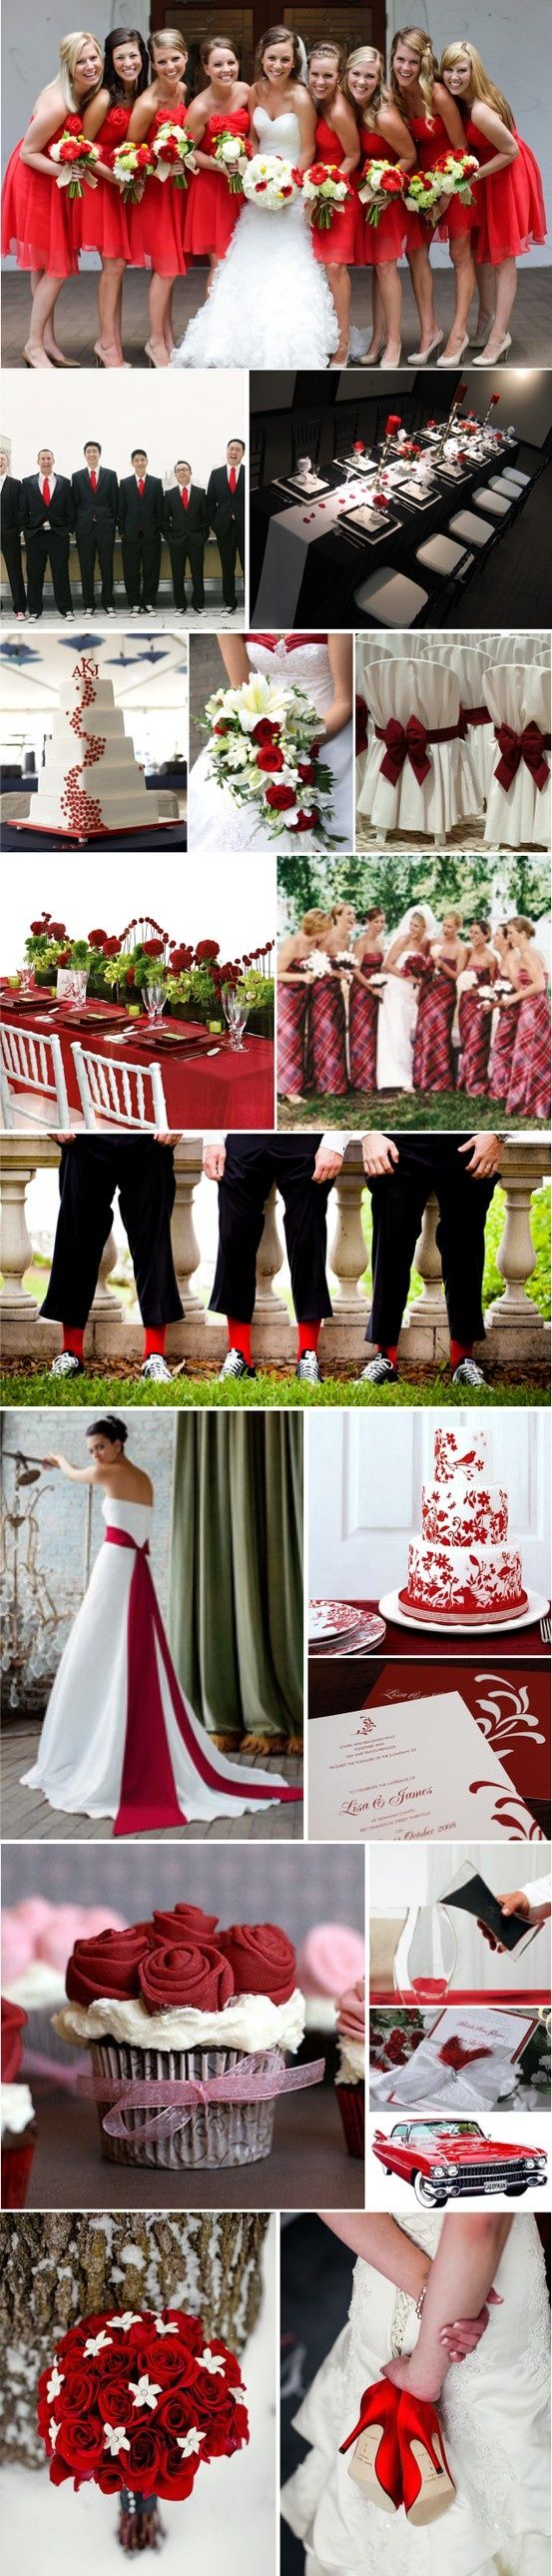 Red and black wedding decor   best WEDDING LADY IN RED images on Pinterest  Princess fancy